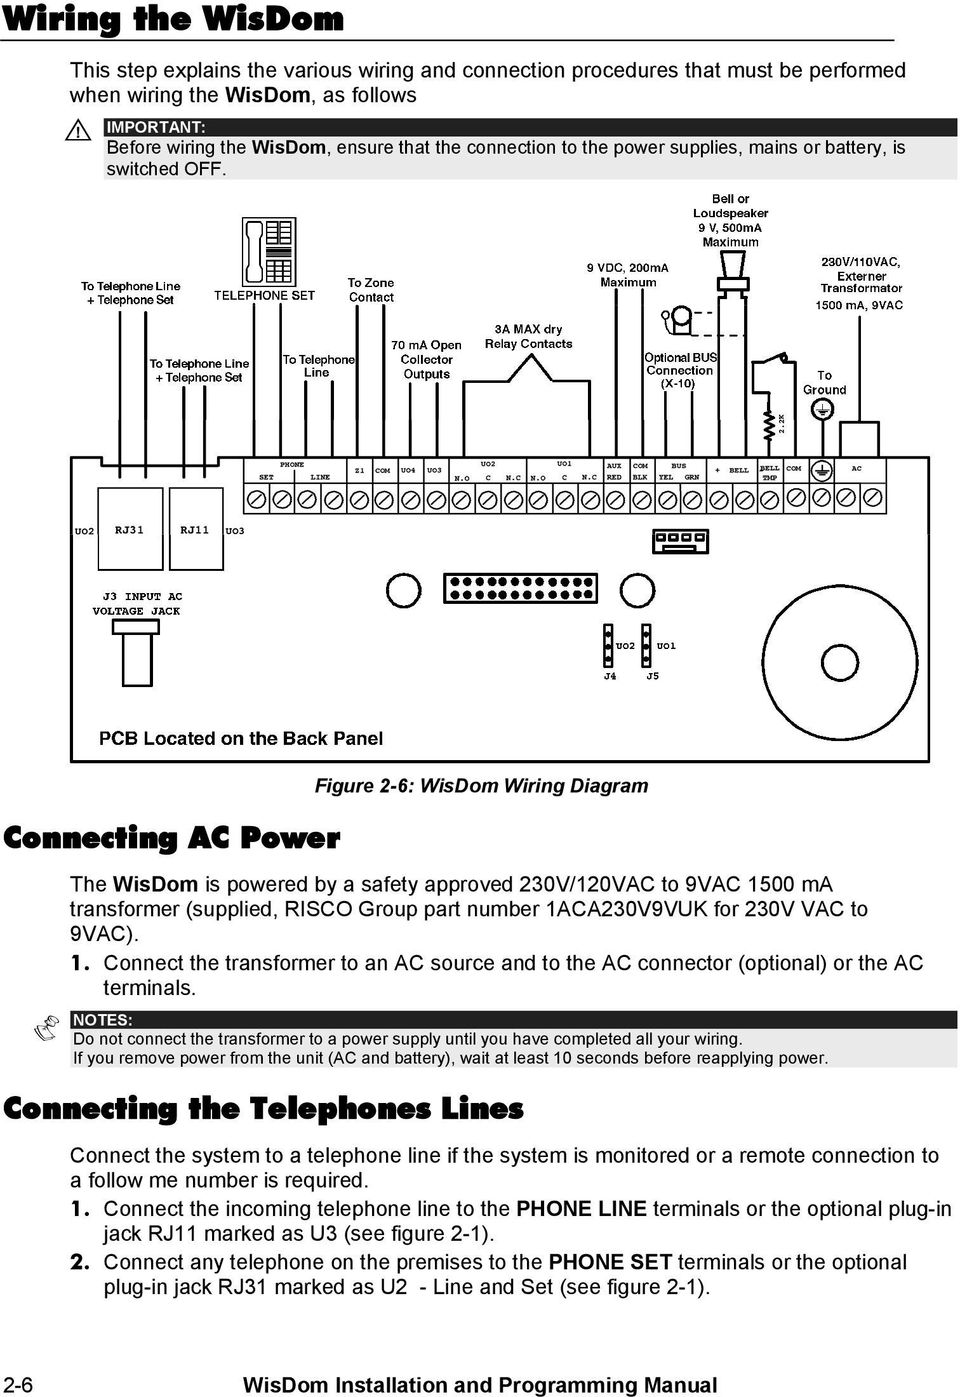 Installation And Programming Manual Pdf Freewave Wiring Diagram Connecting Ac Power Figure 2 6 Wisdom The Is Powered By